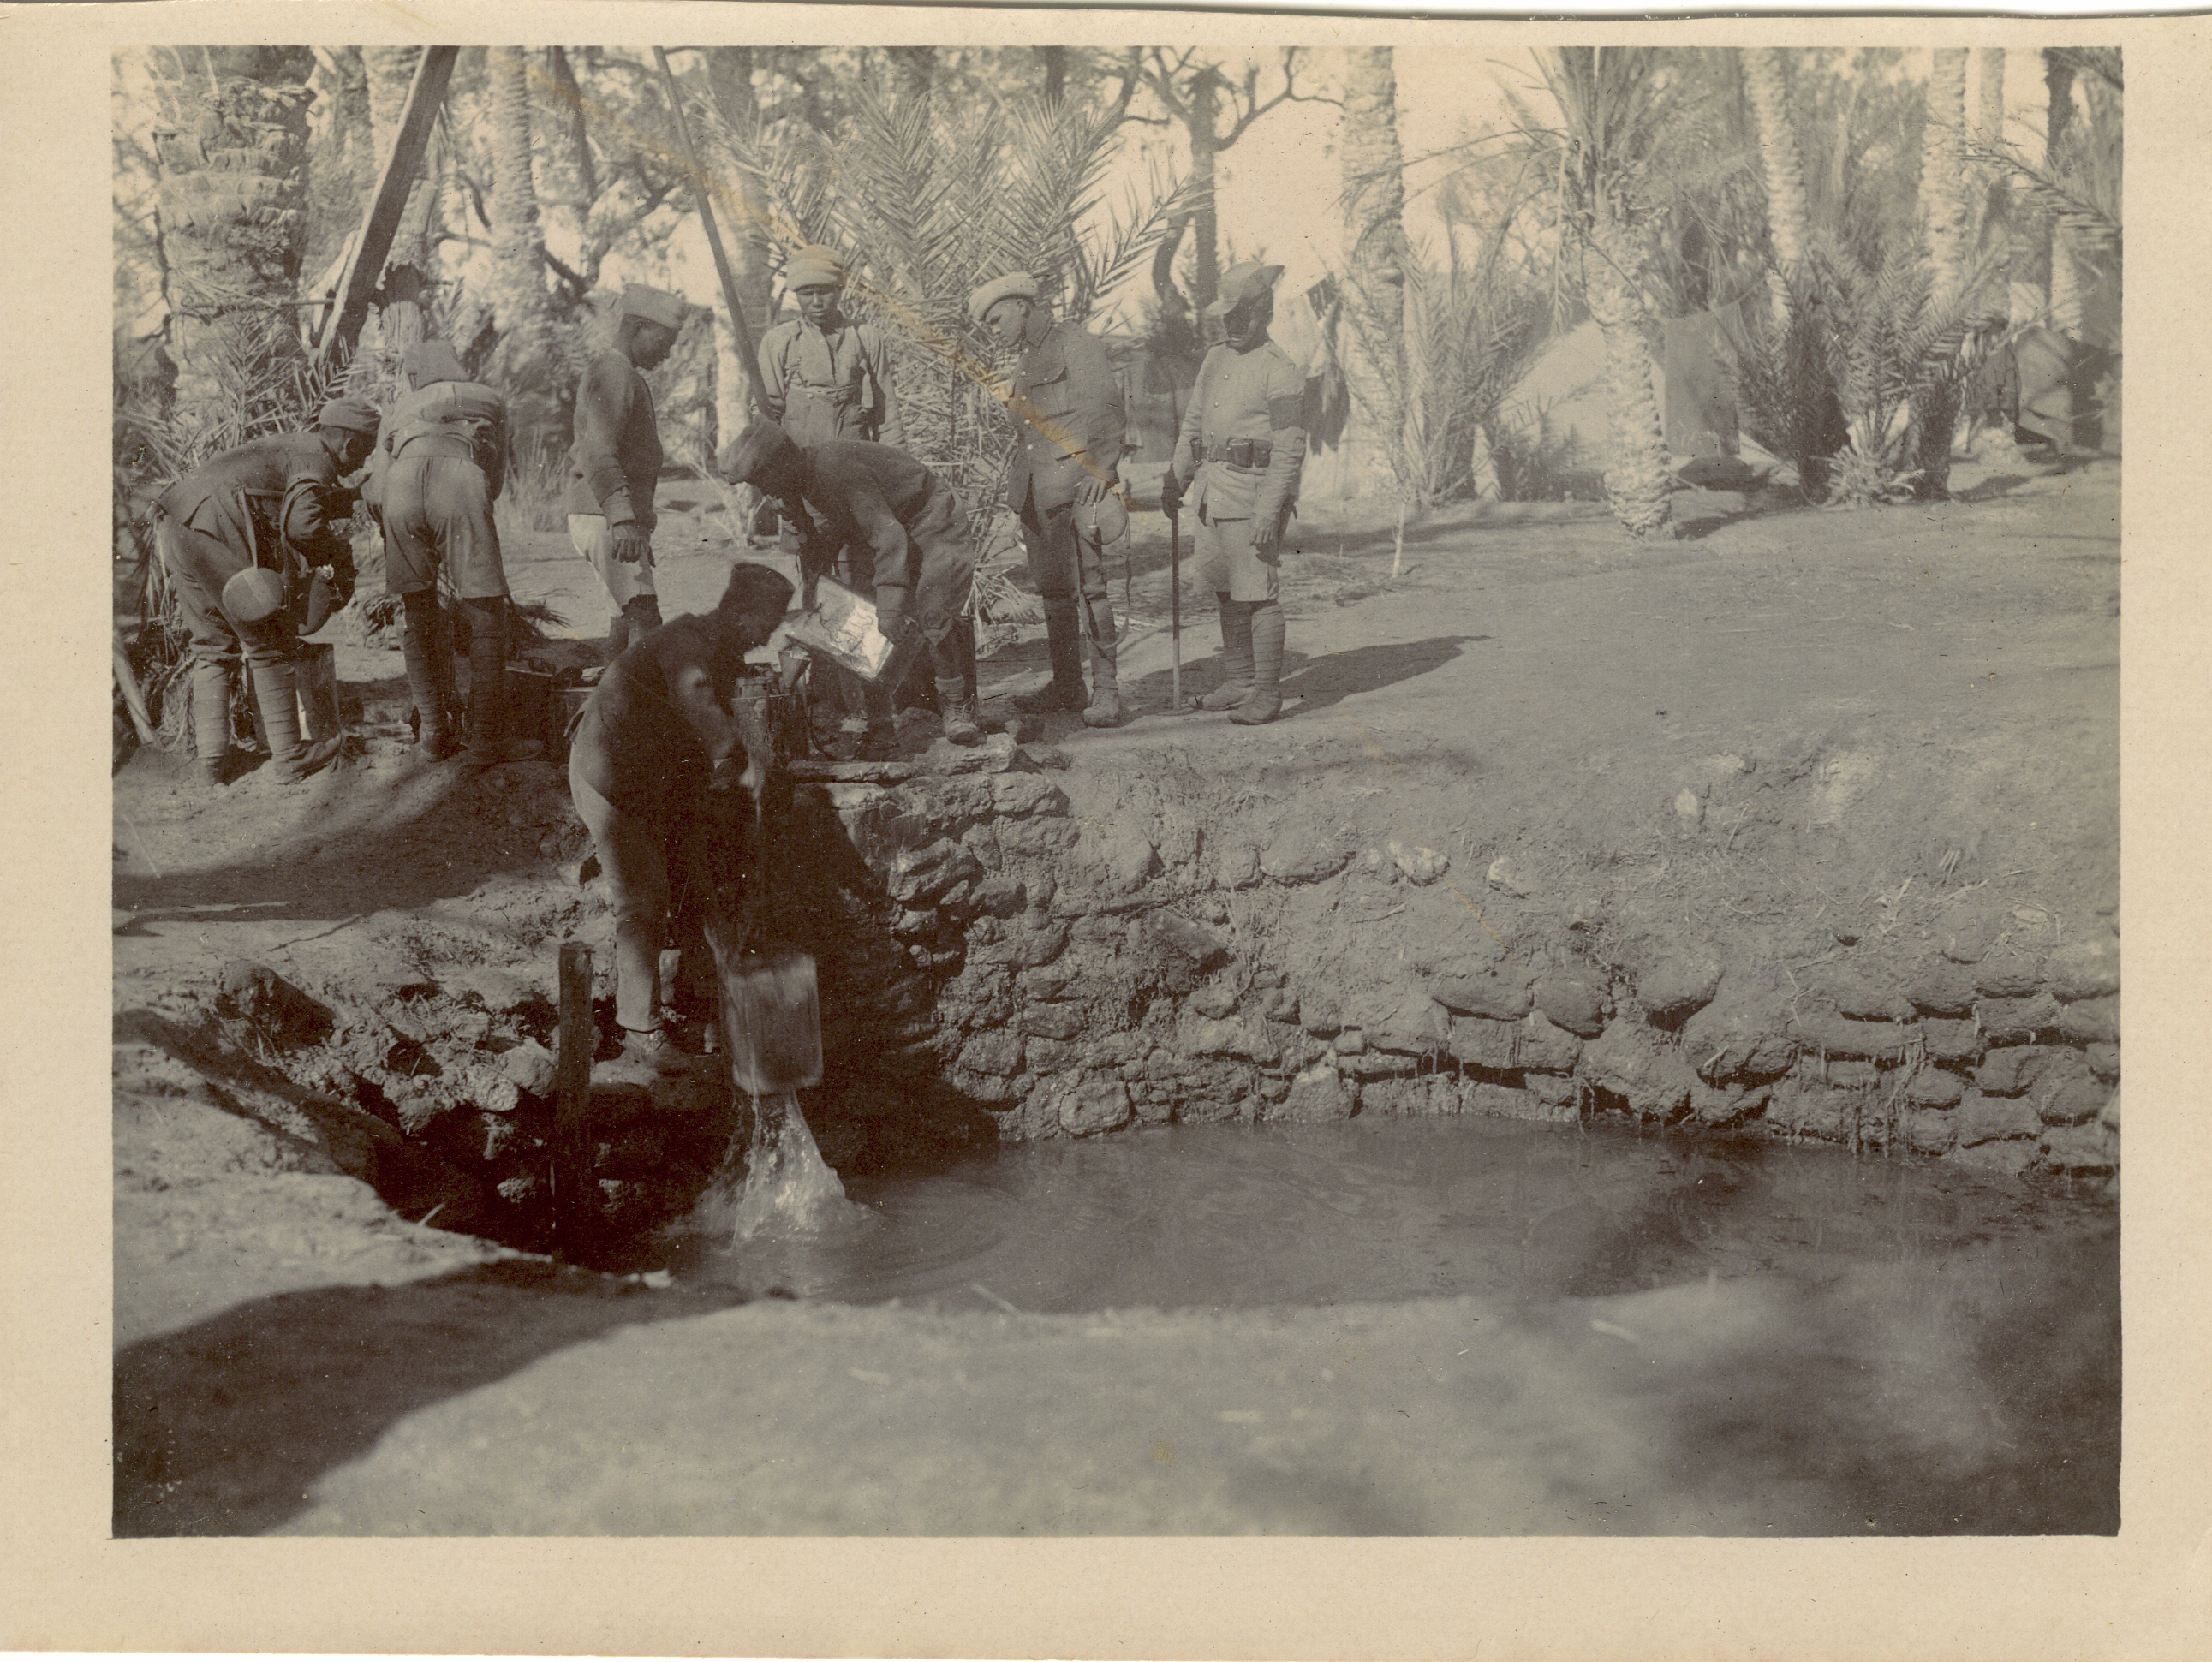 """Captioned """"Moses' Well"""" - with the Garhwal Rifles, Ain Musa 1916"""